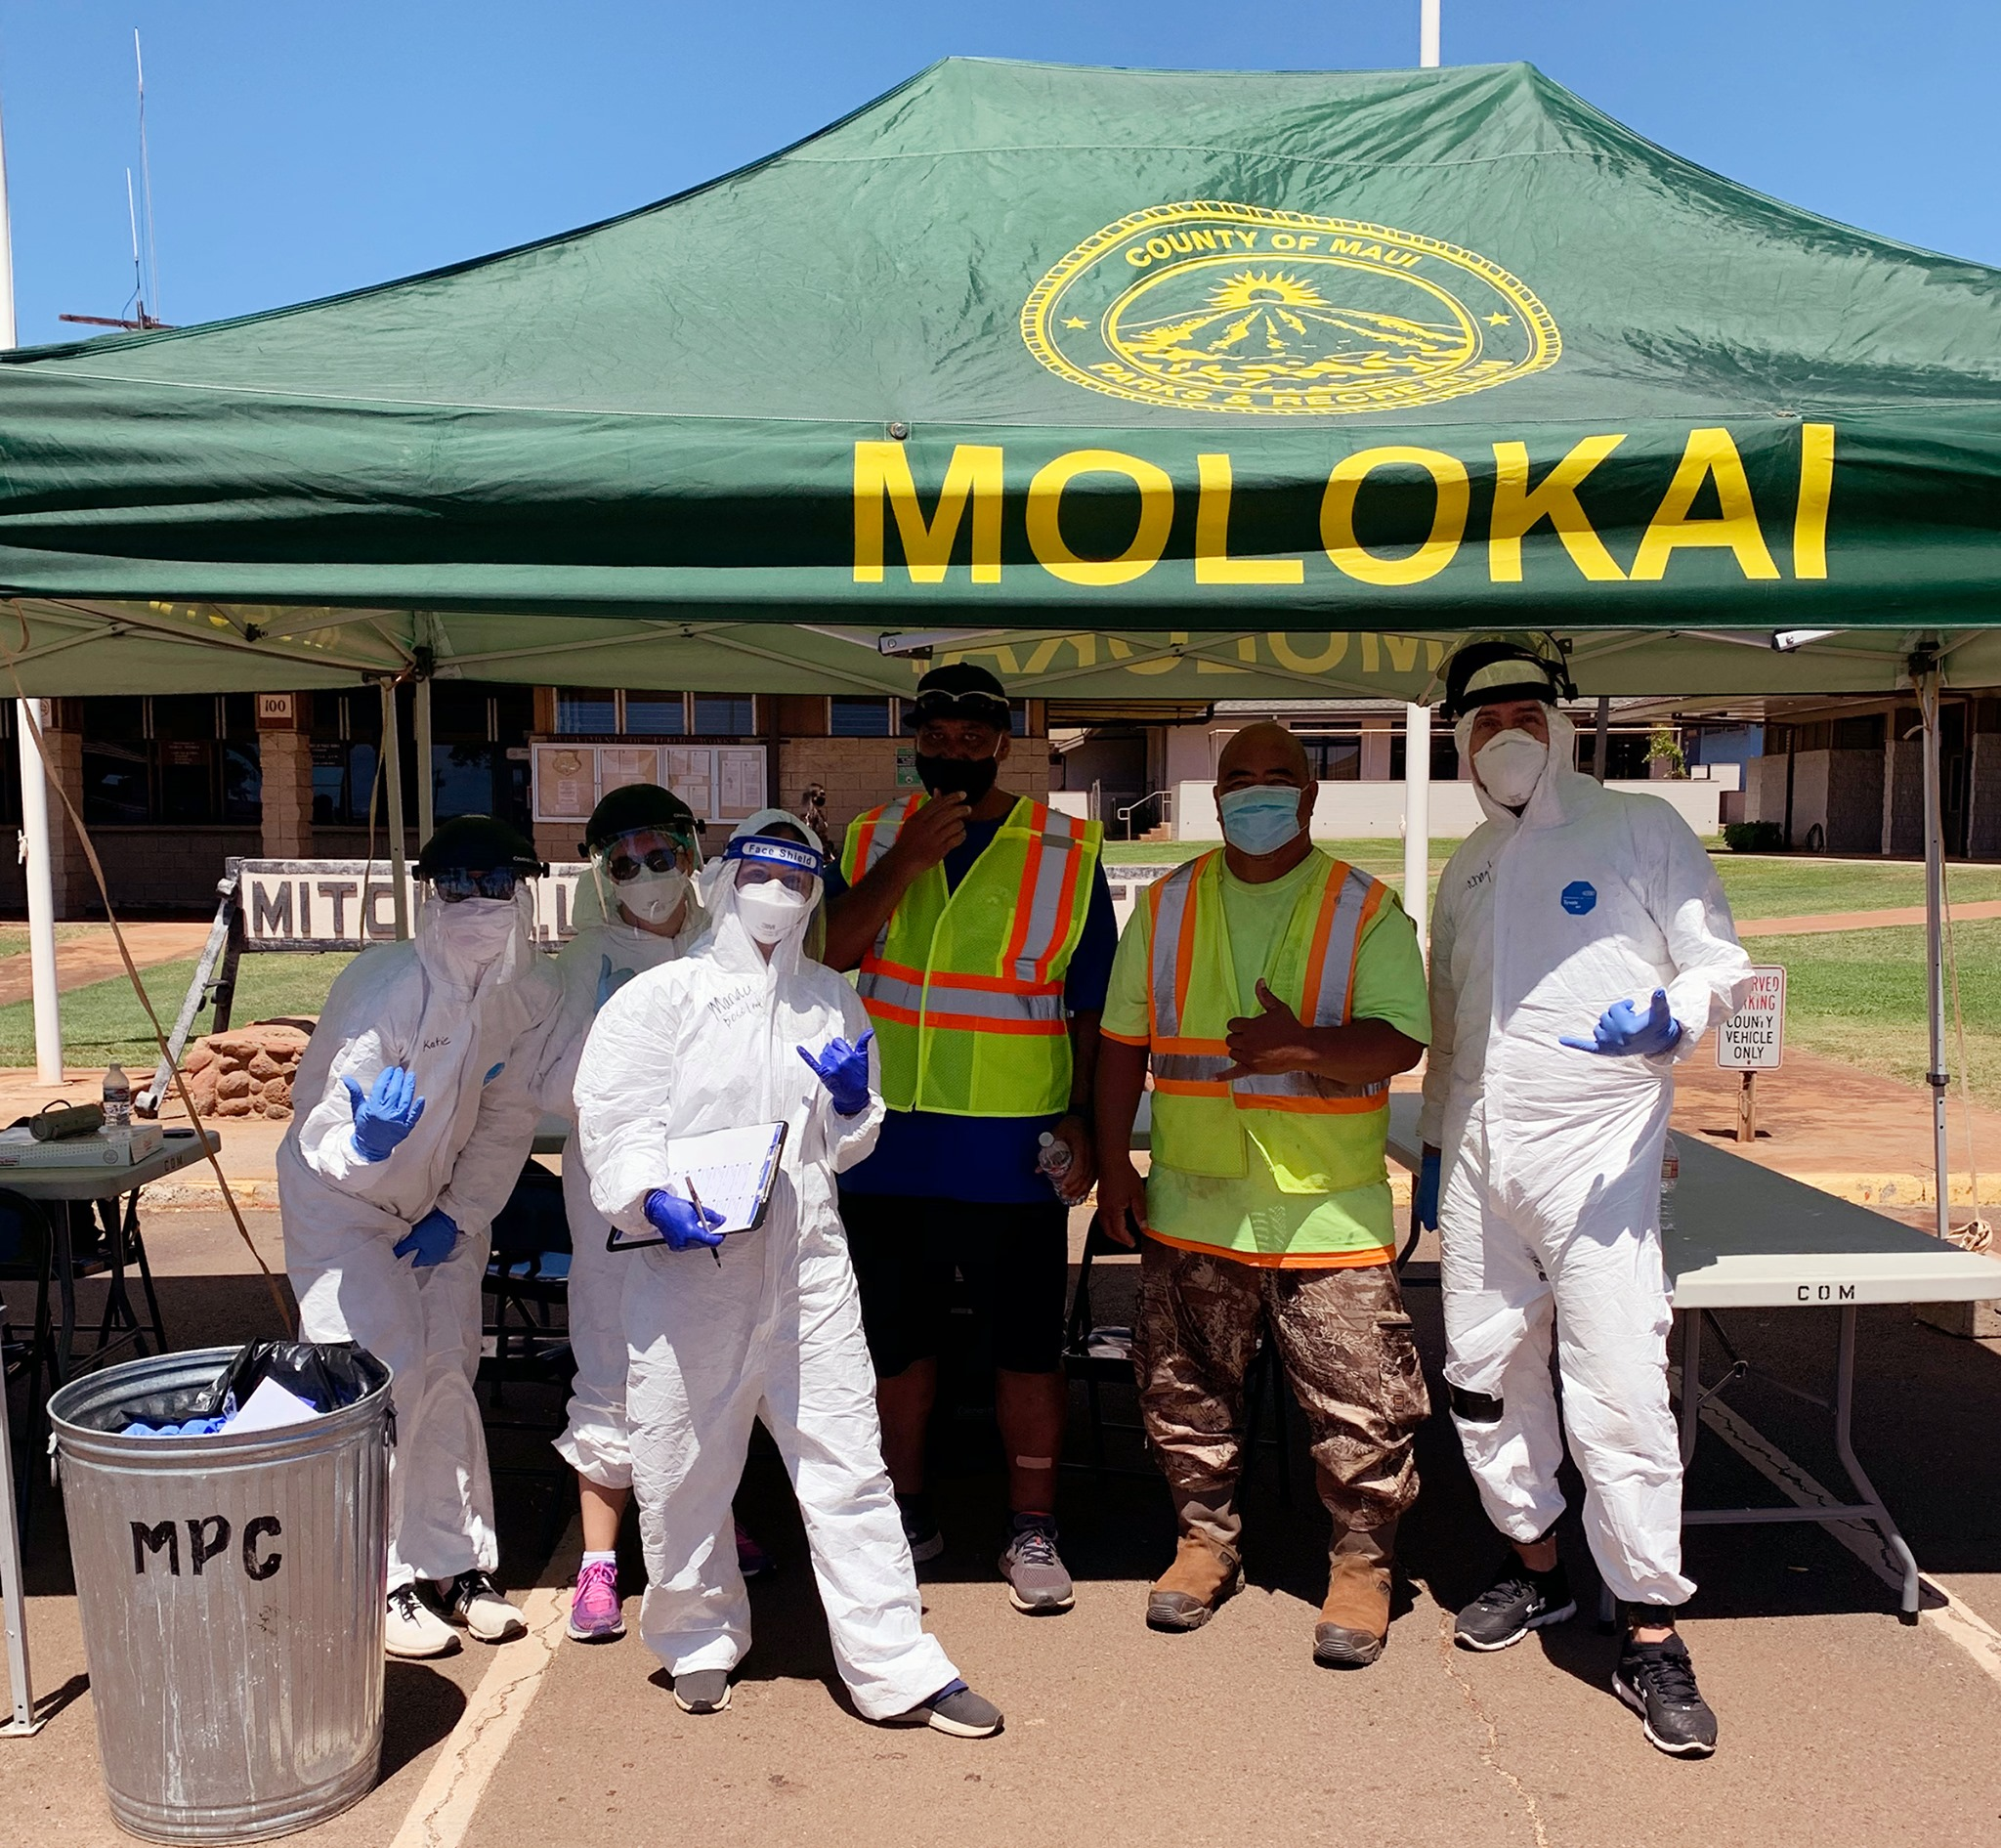 Drive-Through COVID-19 Testing and Mask Distribution, Wednesday, Sept. 16, on Moloka'i